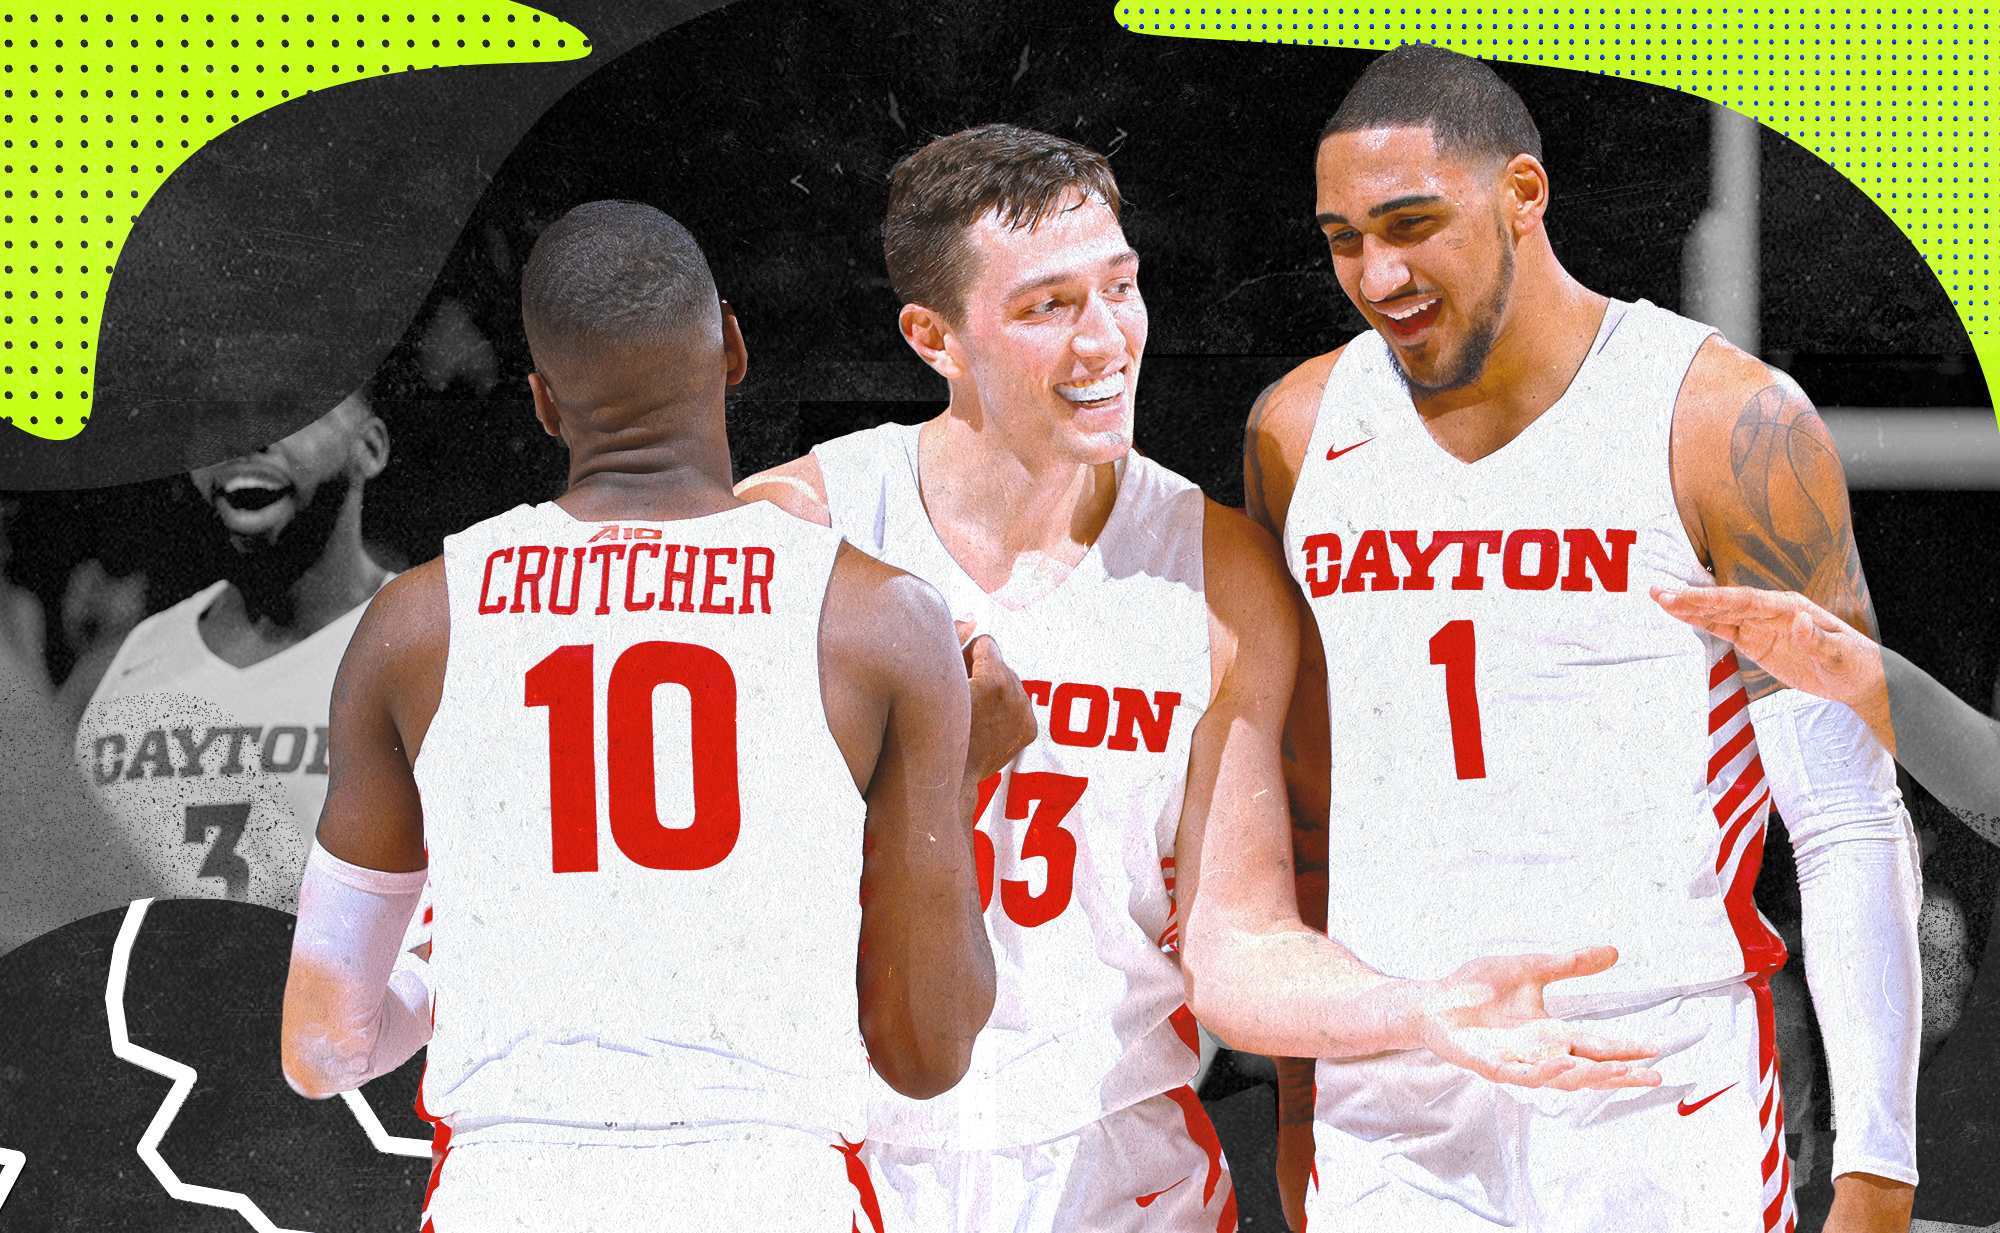 6 college basketball teams that could win their first national championship in 2020